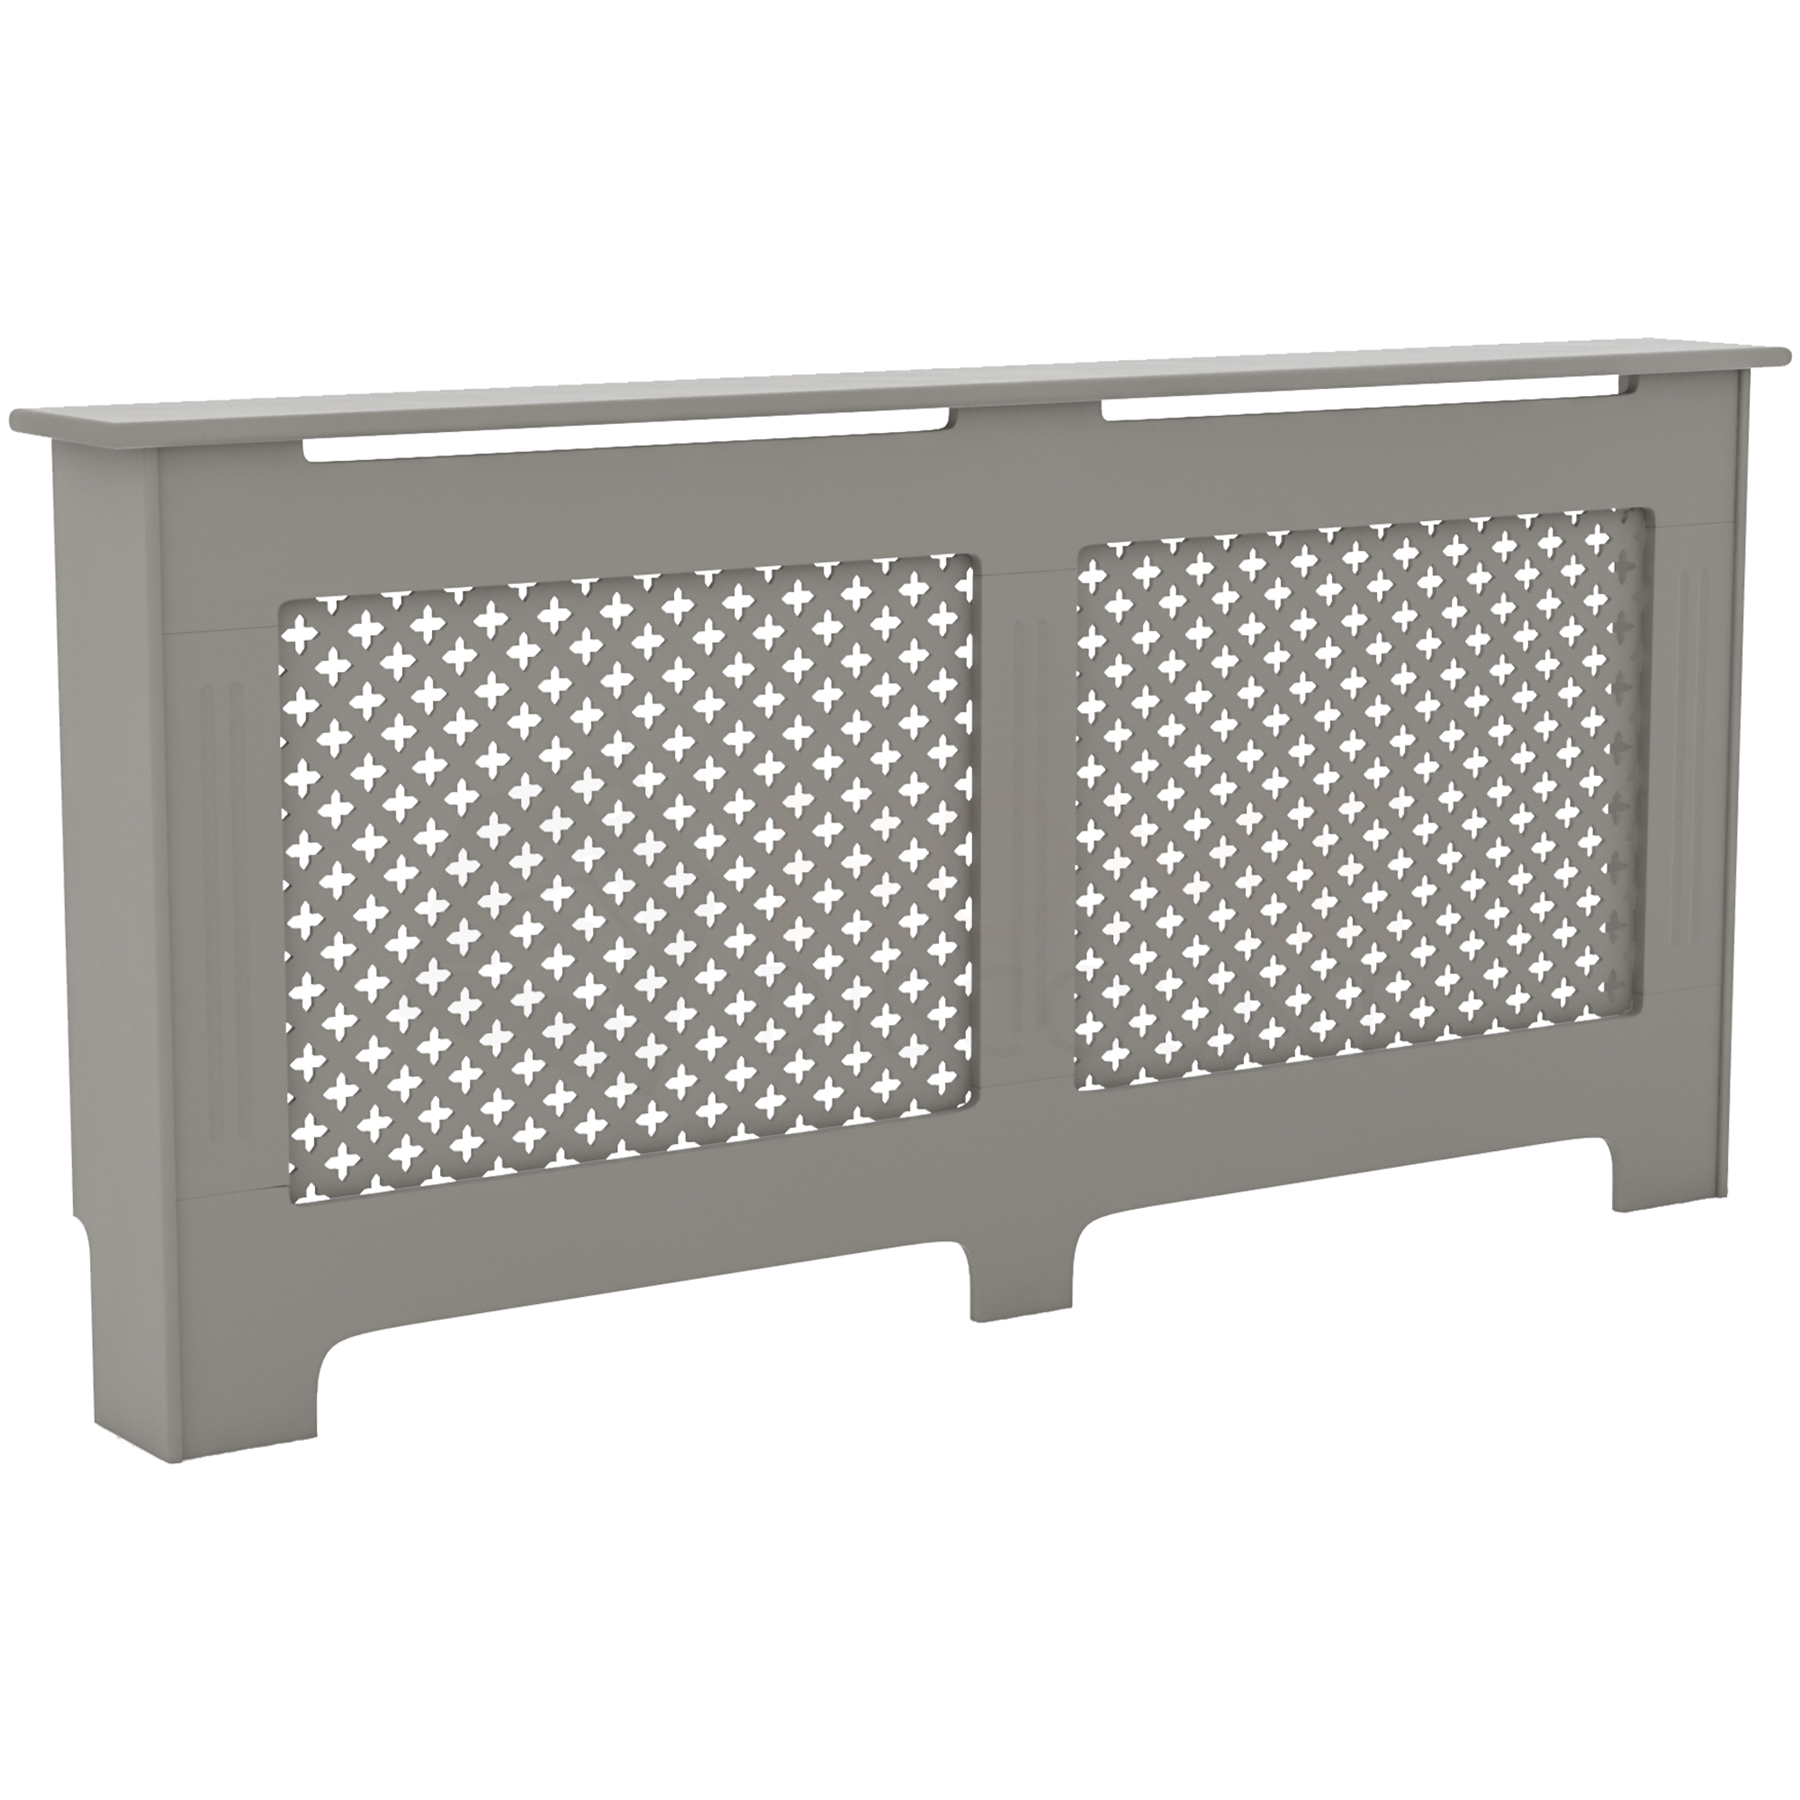 Radiateur-Housse-Blanc-inachevee-MODERNE-BOIS-TRADITIONNELLE-Grill-cabinet-furniture miniature 289